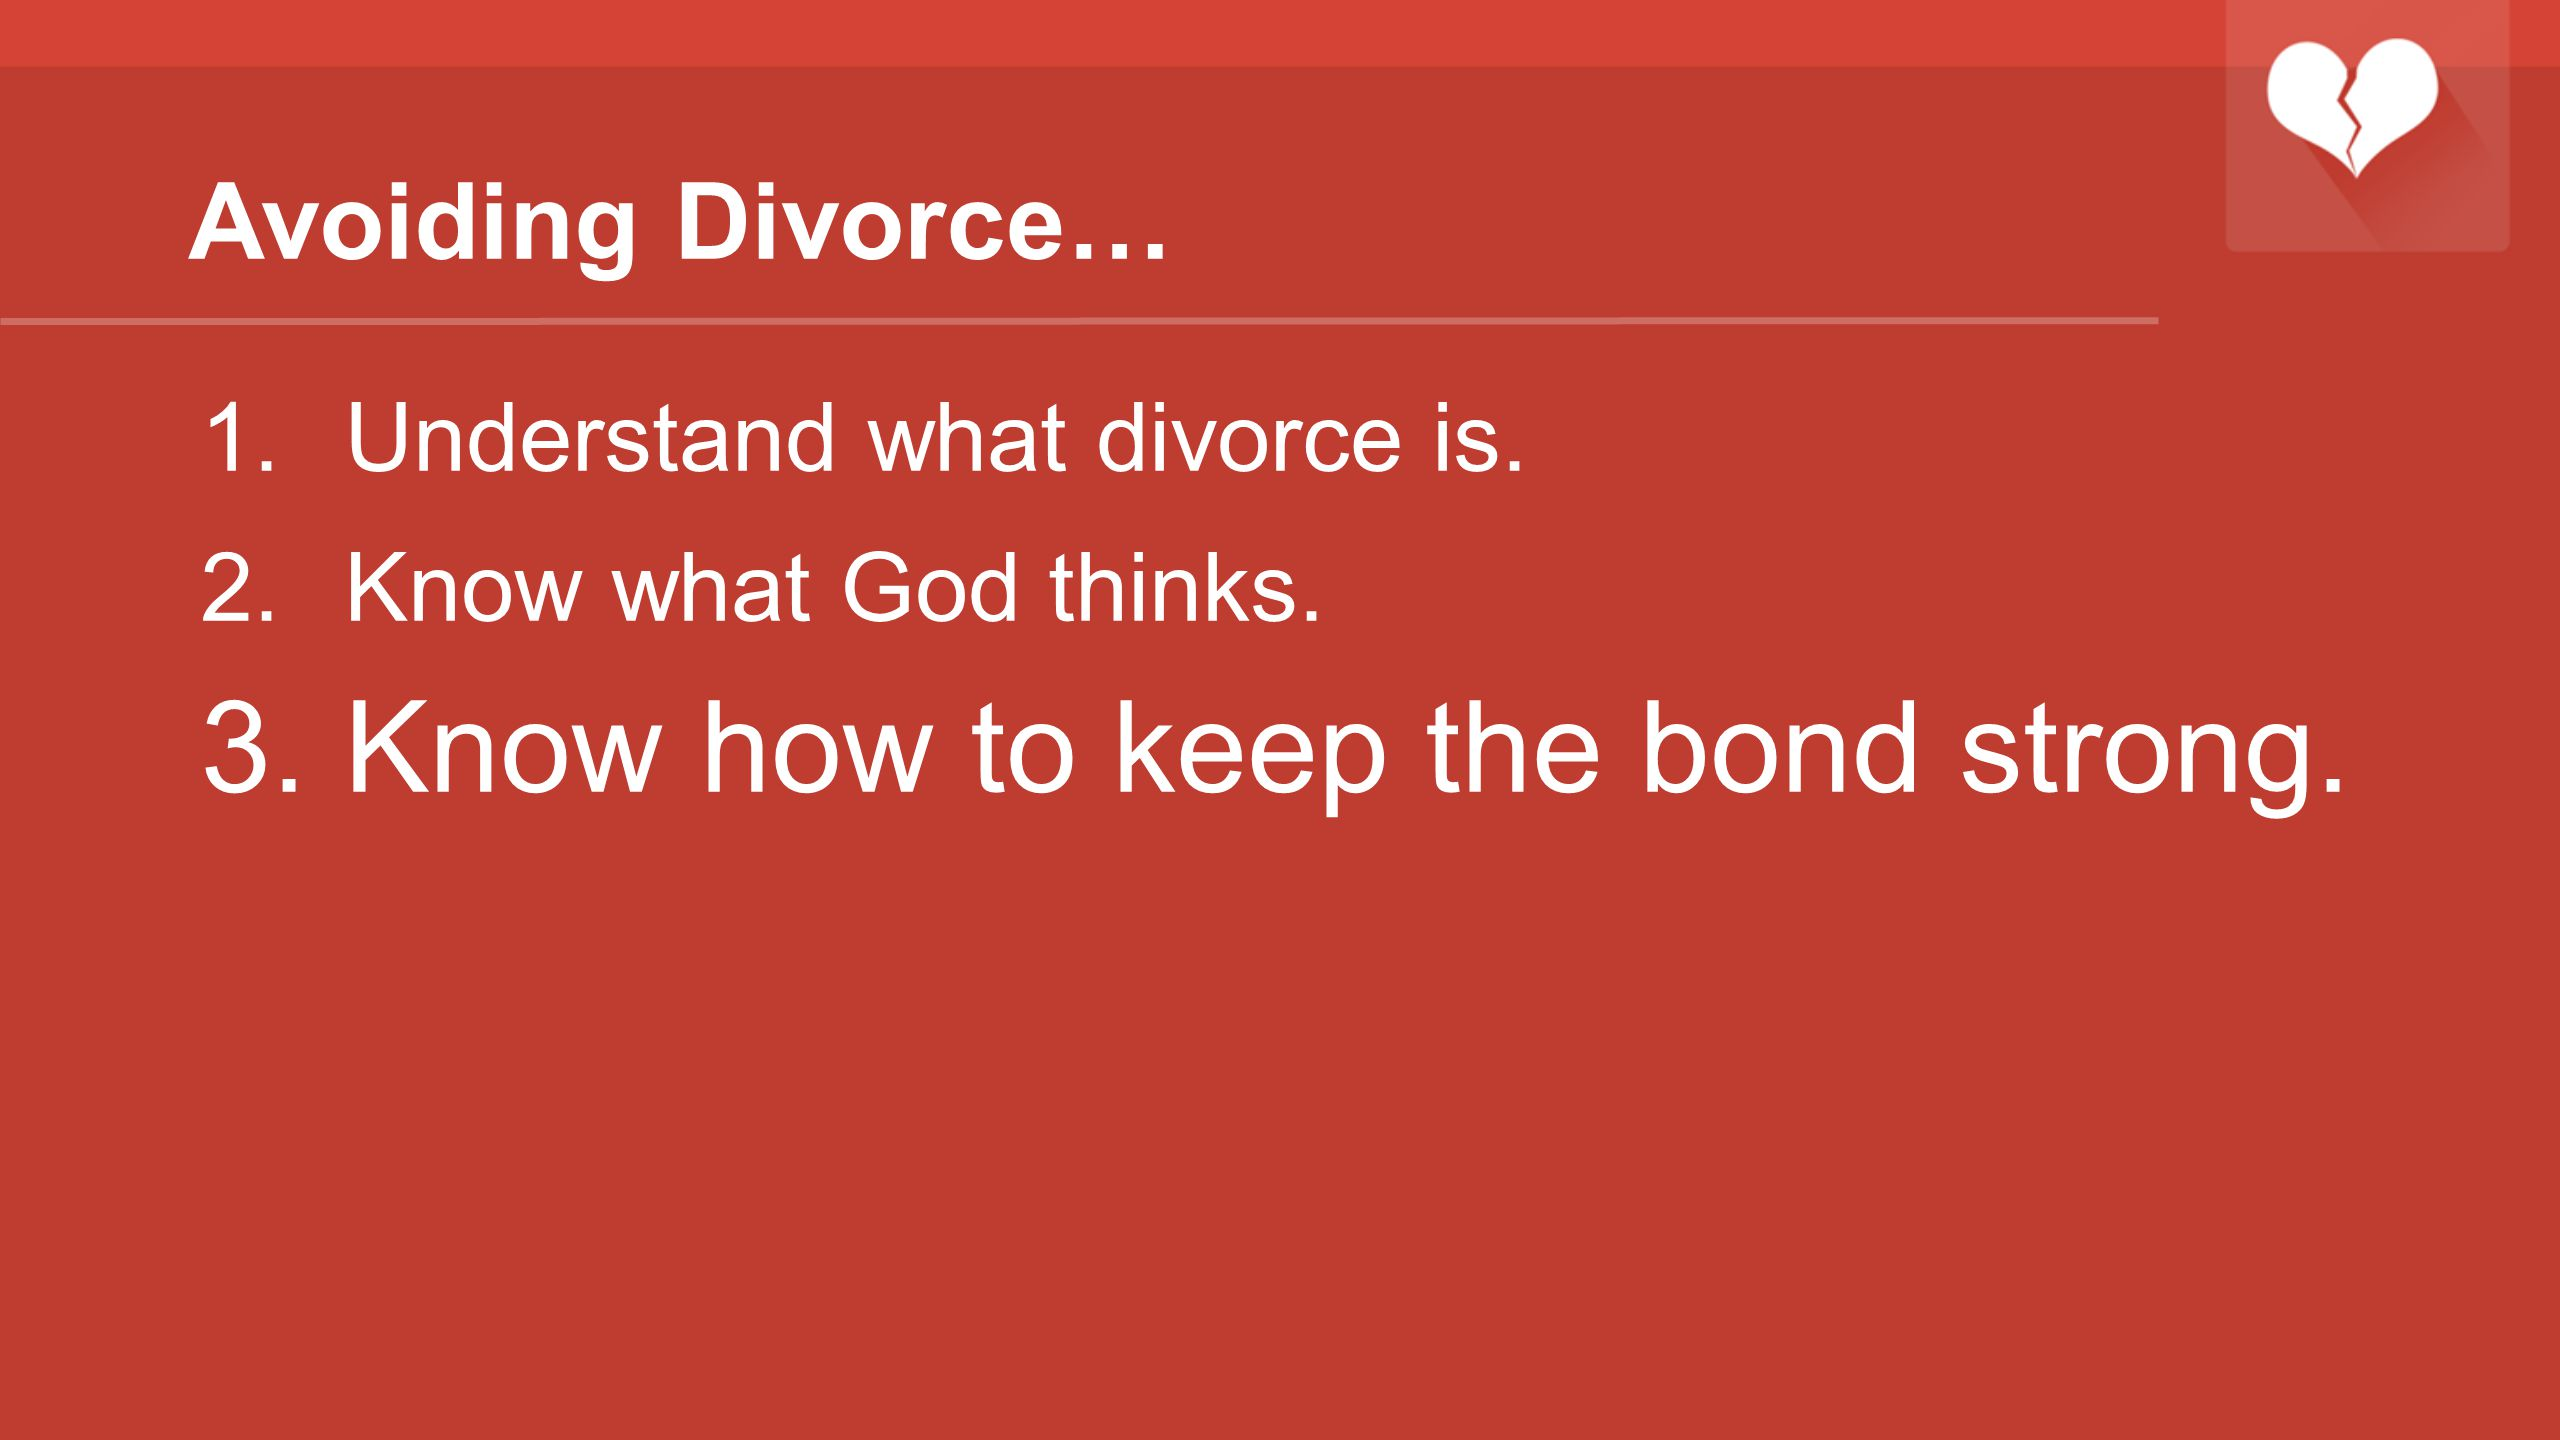 Avoiding Divorce… 1.Understand what divorce is. 2.Know what God thinks. 3.Know how to keep the bond strong.